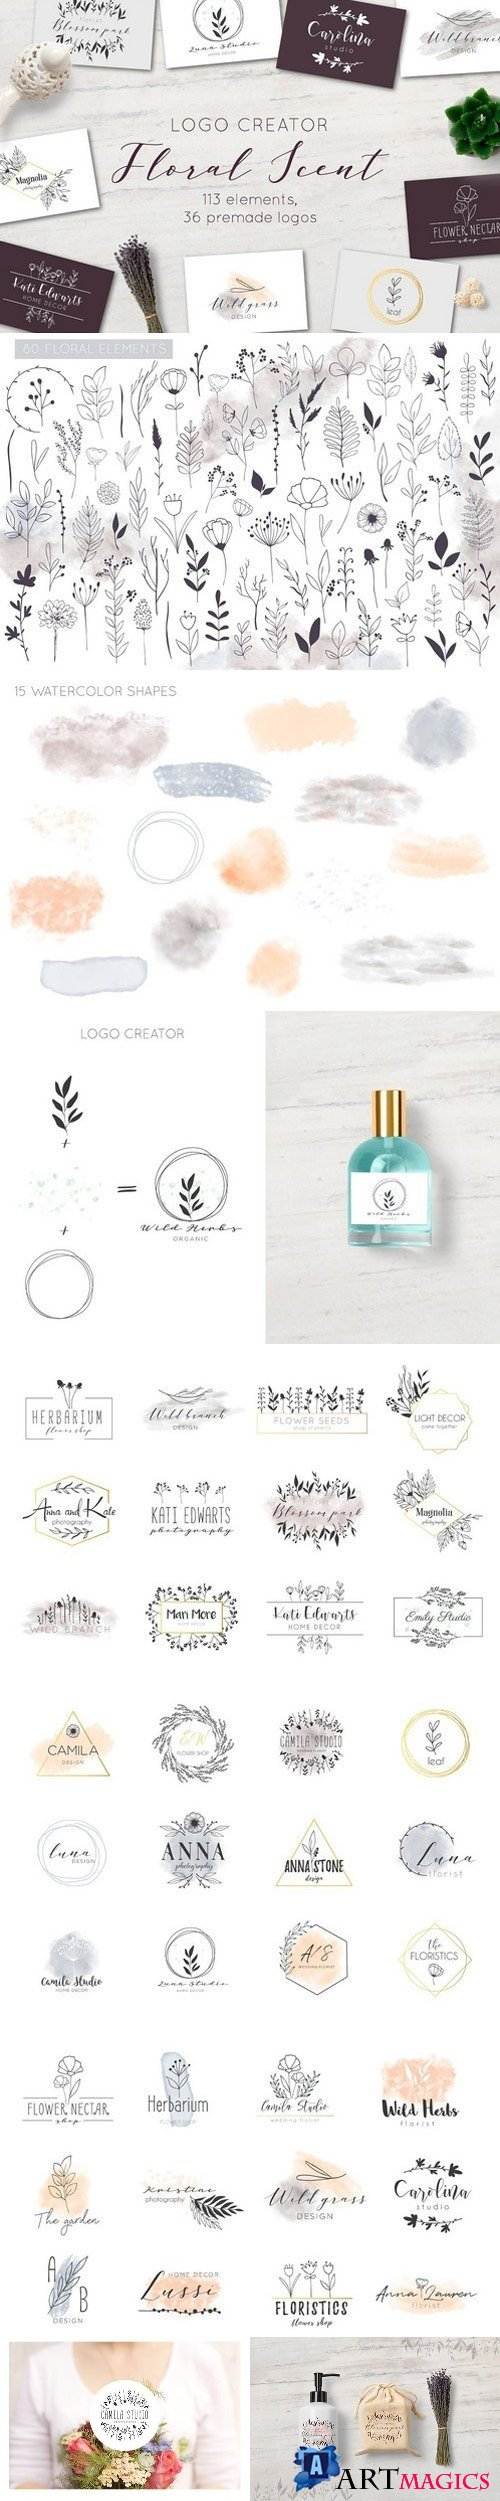 Floral Scent LOGO CREATOR - 2147698